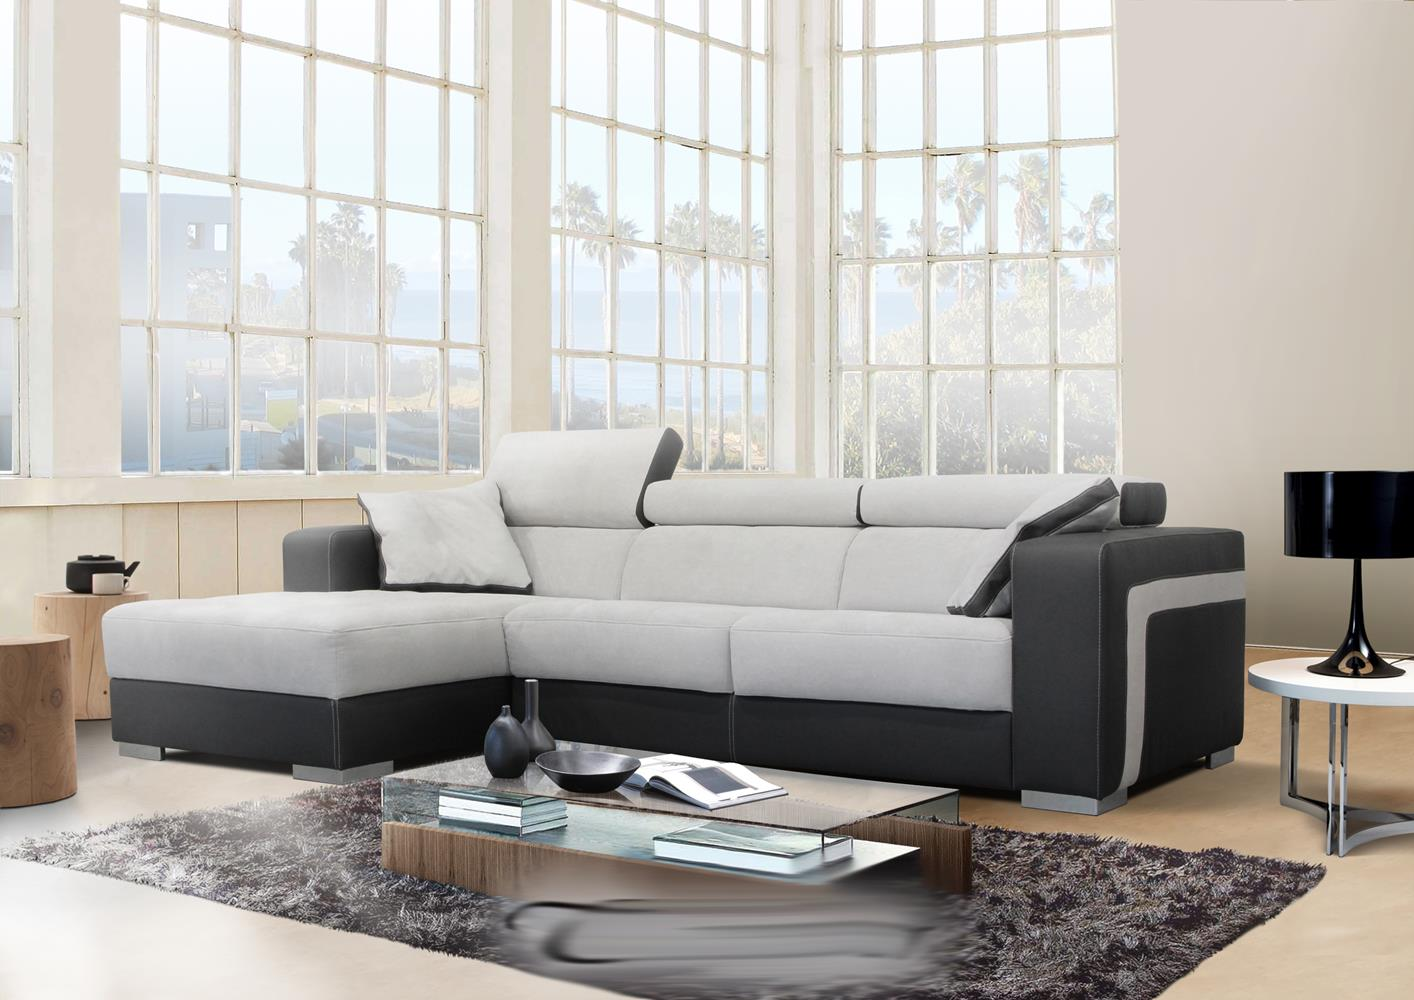 acheter votre canap chaise longue accoudoirs d cor vague chez simeuble. Black Bedroom Furniture Sets. Home Design Ideas